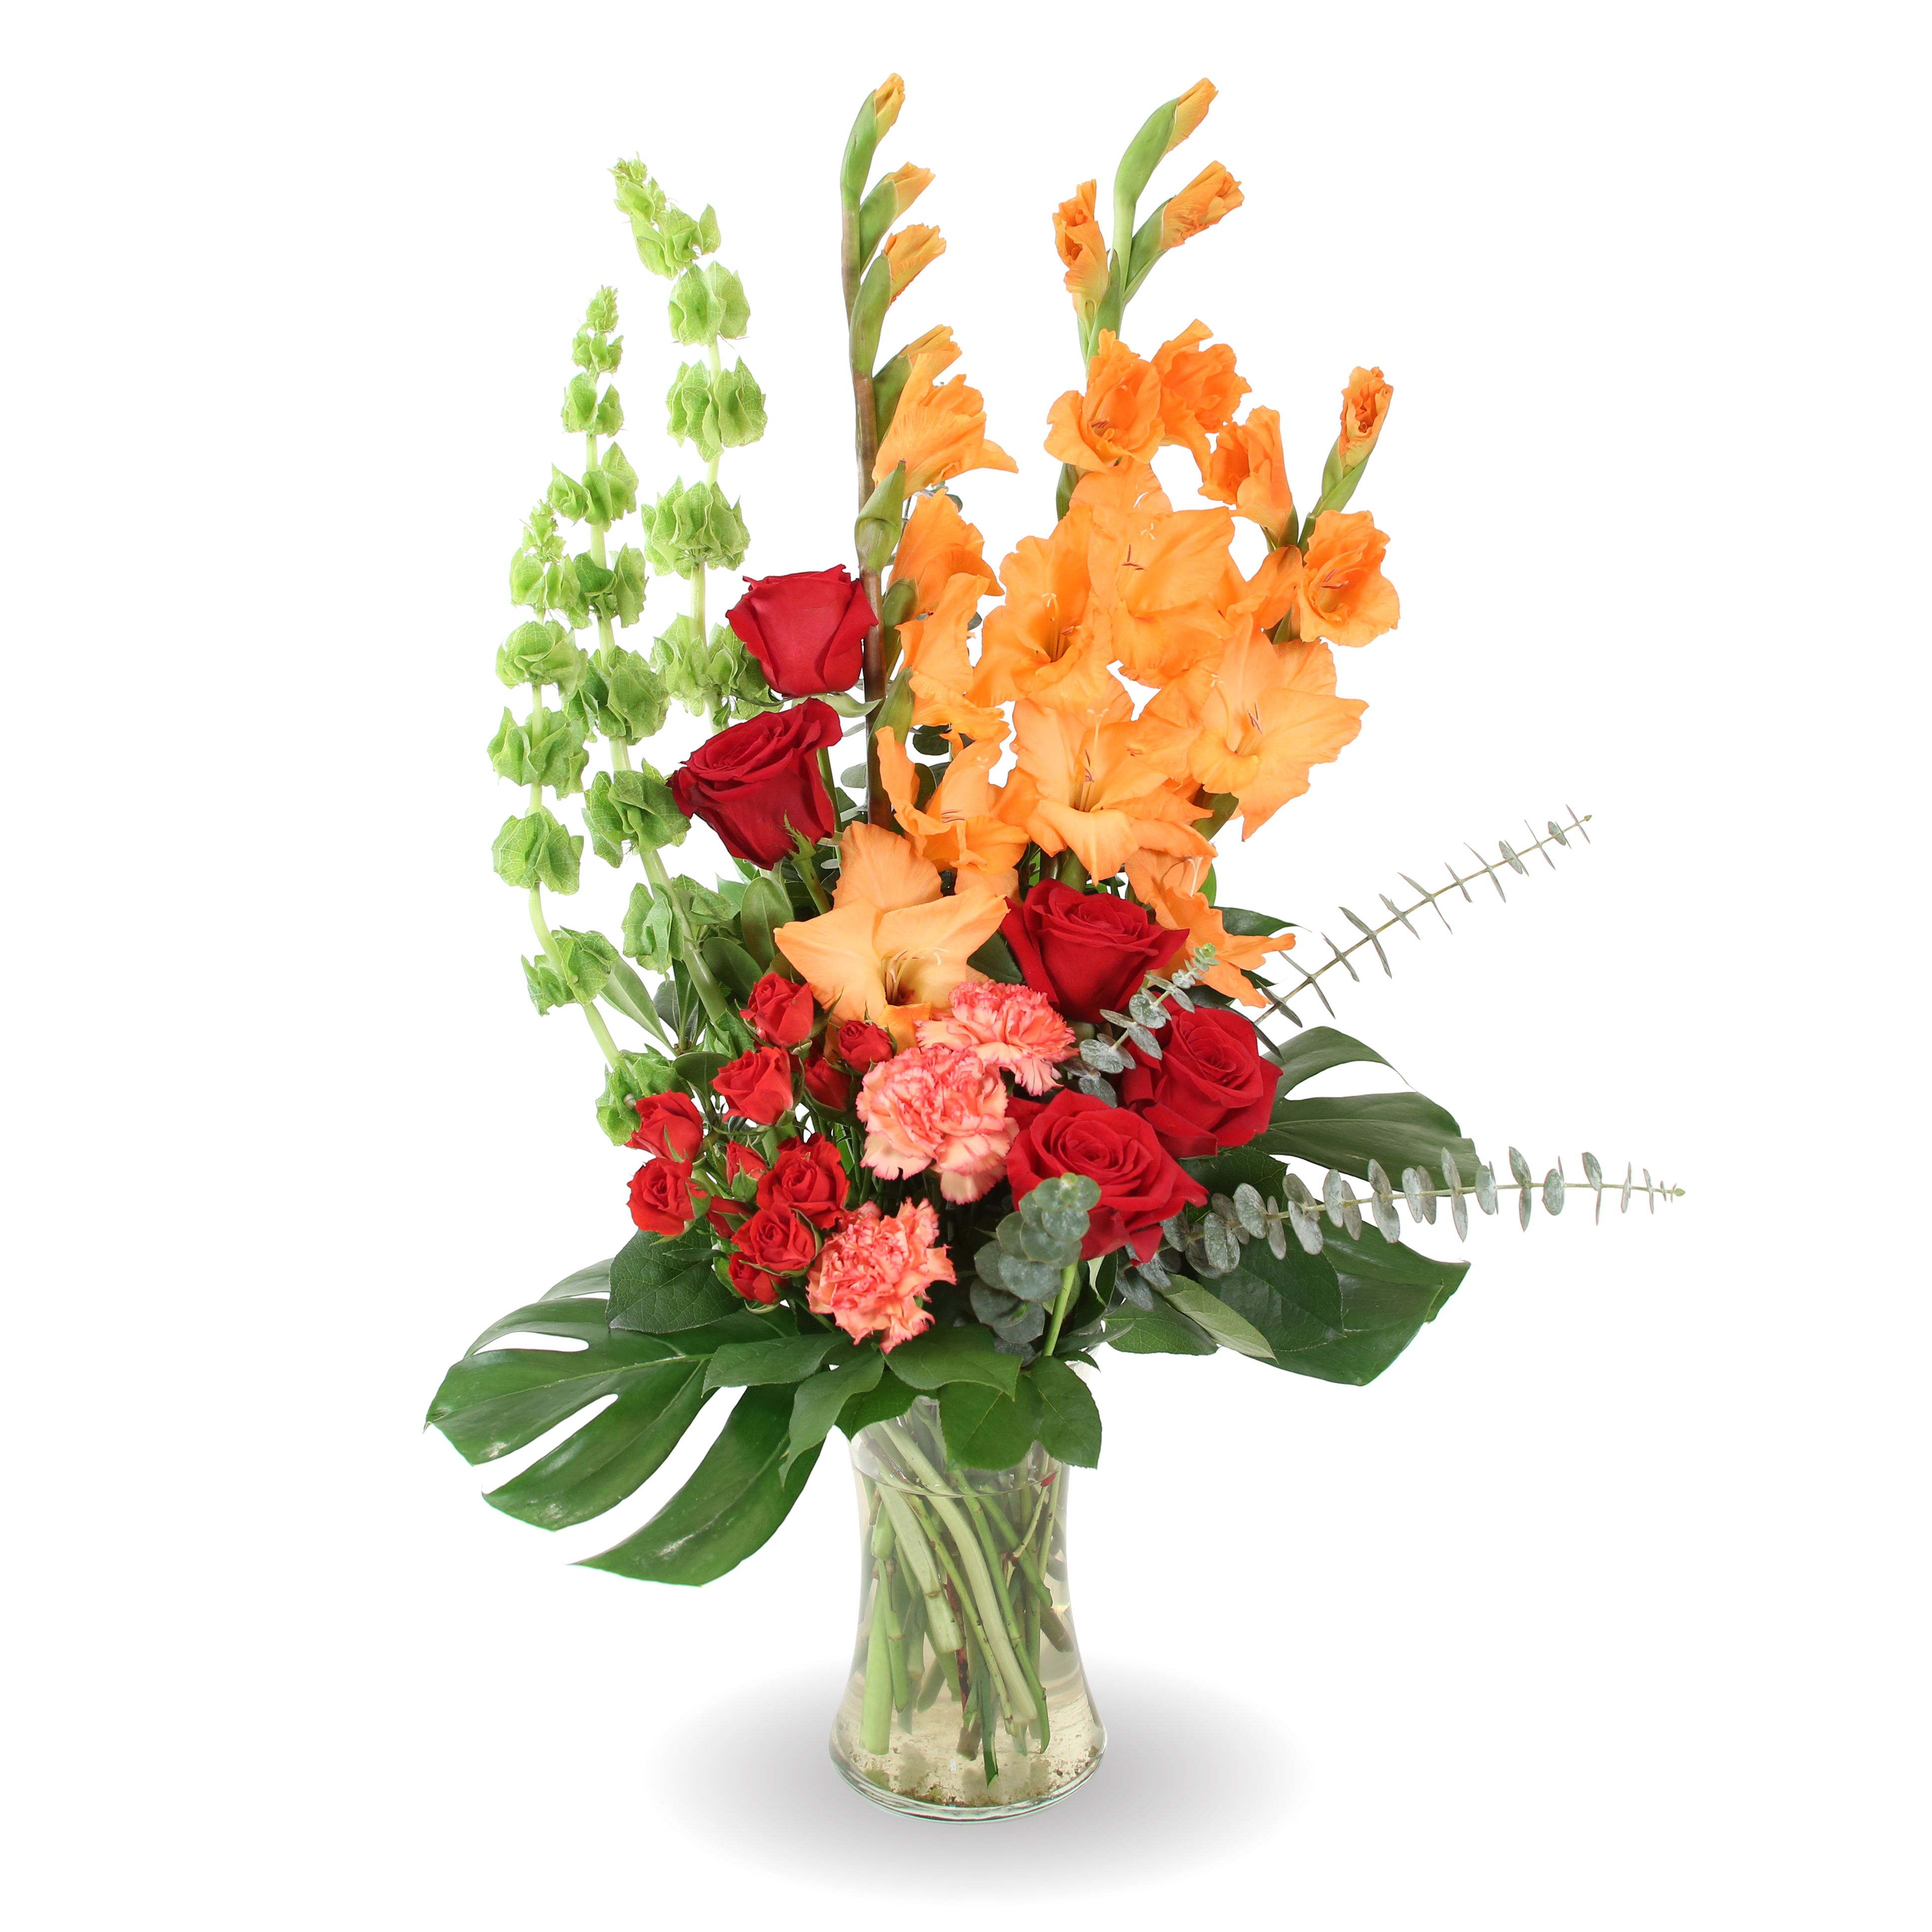 Custom funeral home website design funeral home web design just a contemporary funeral arrangement with a bold color palette designed with coral gladiolas bells of ireland tropical leaves red roses carnations izmirmasajfo